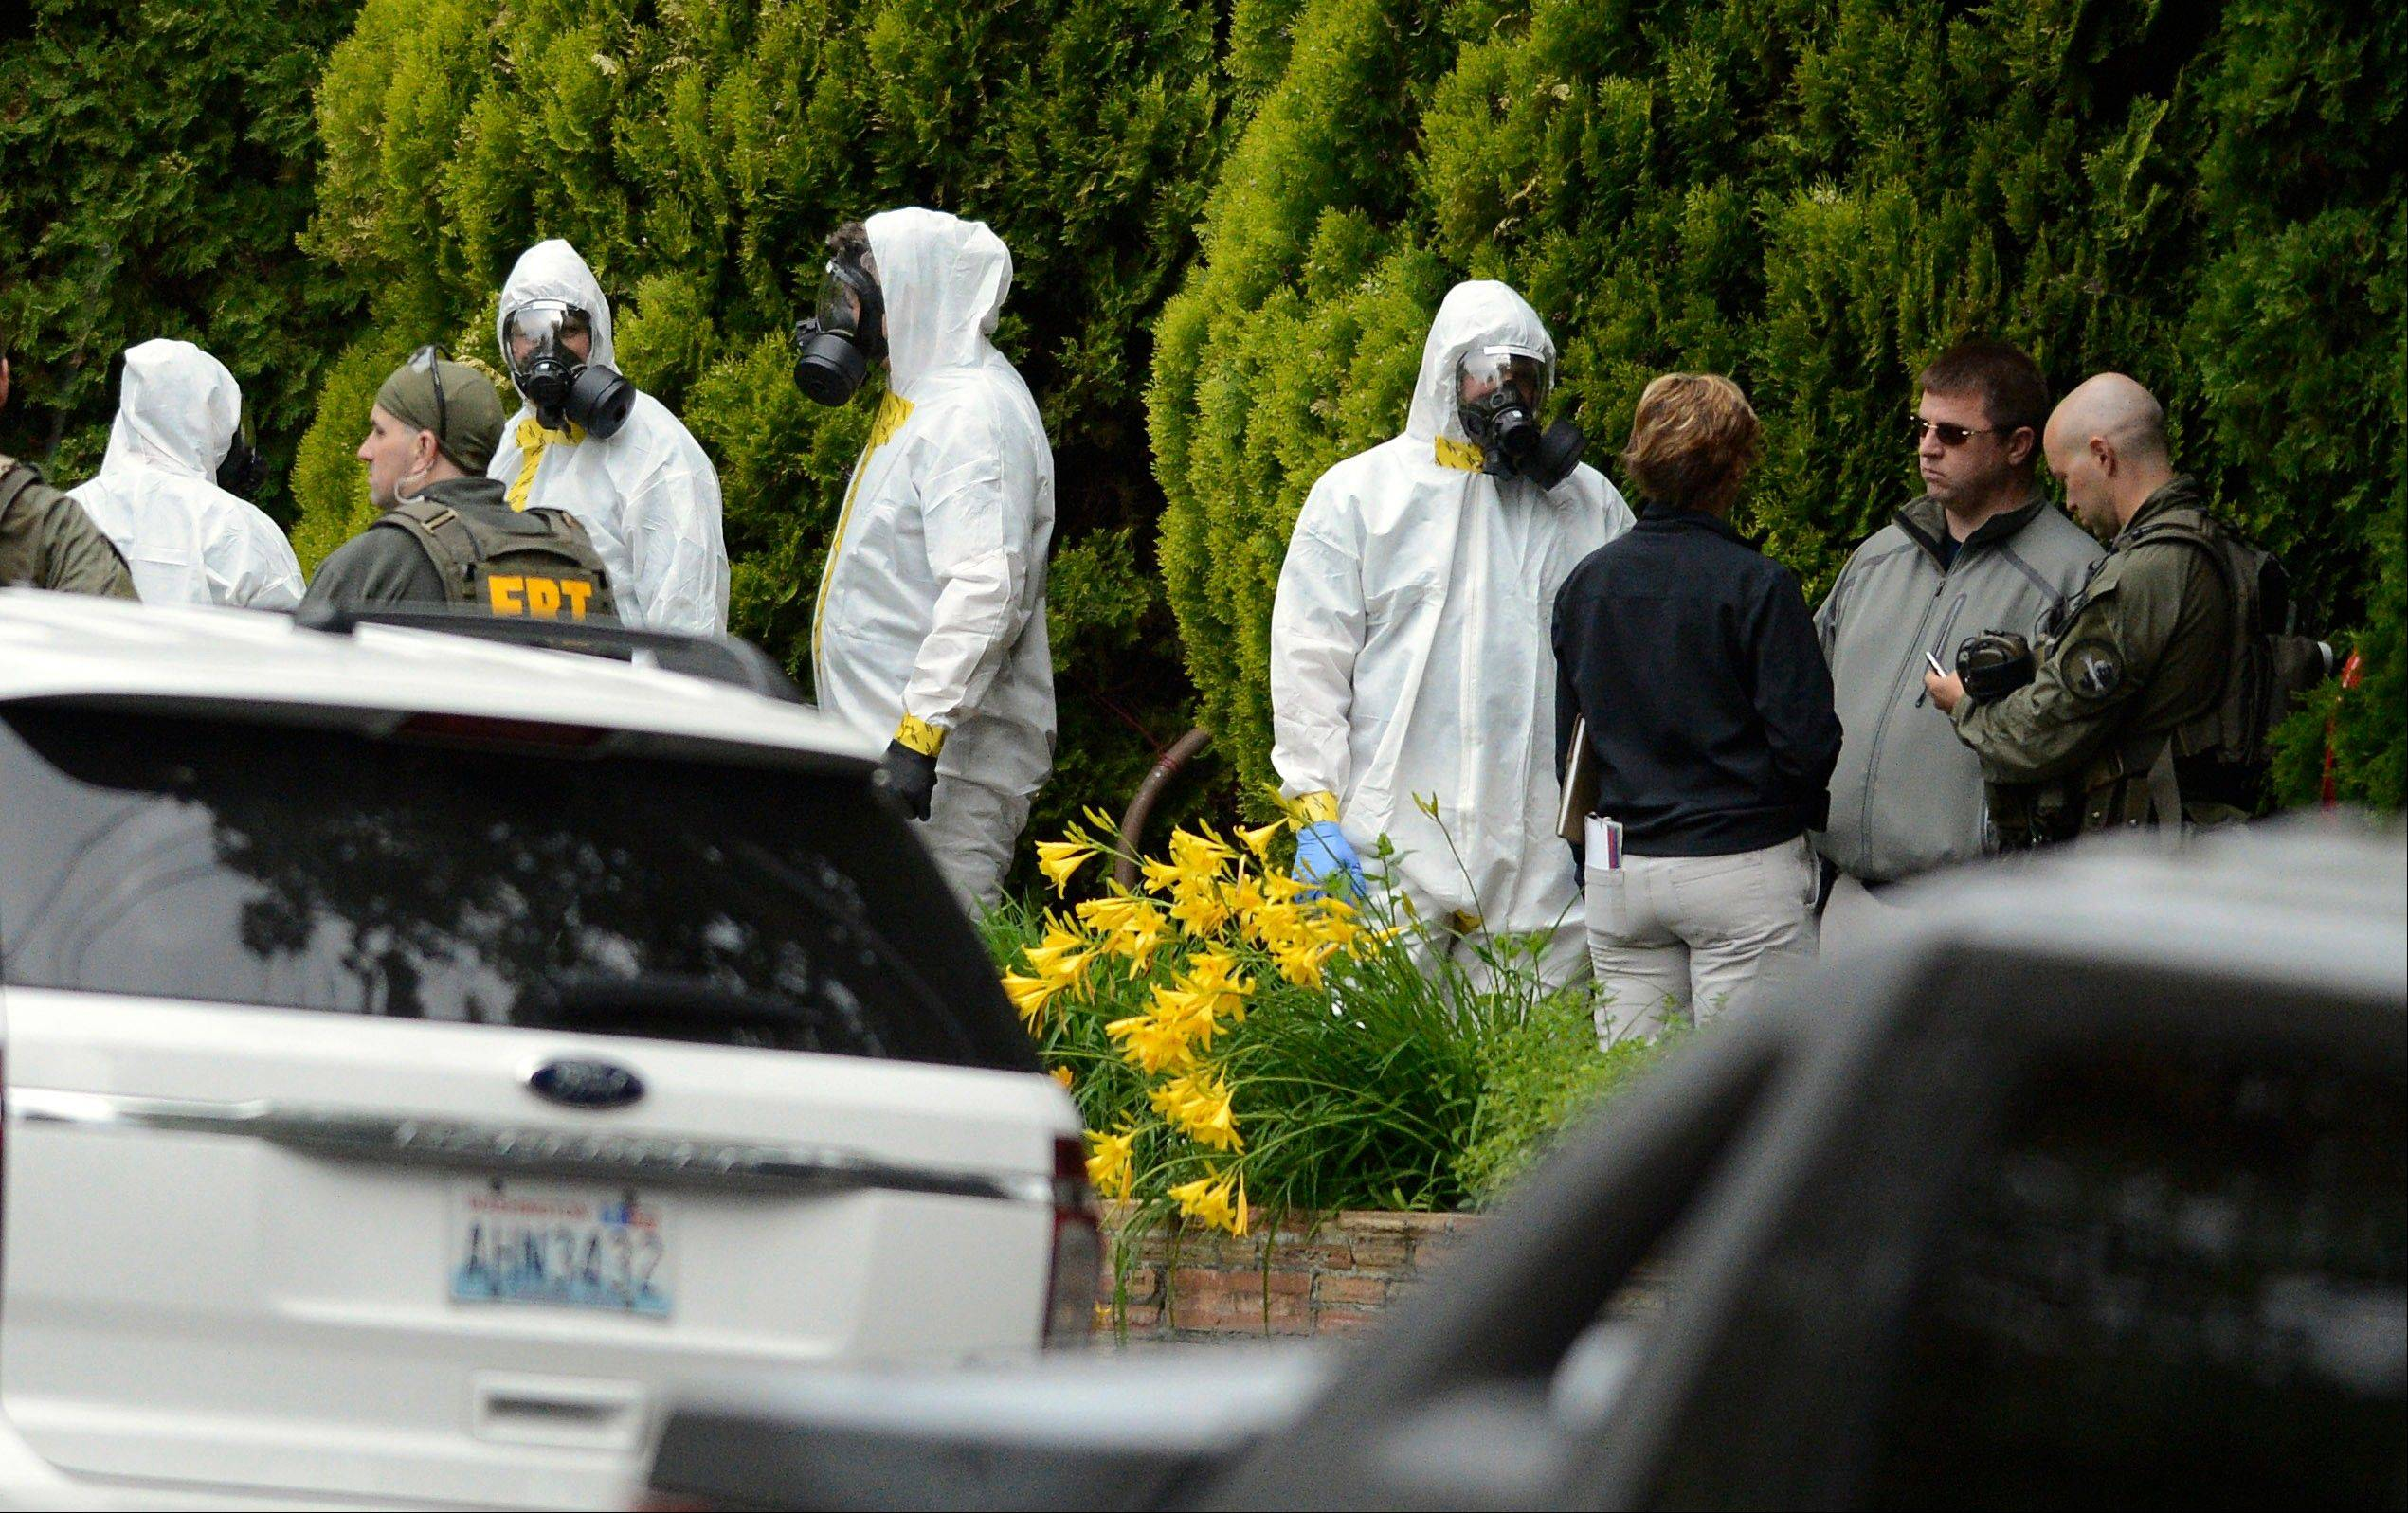 During the execution of a search warrant, members of the Joint Federal Haz-Mat Team, FBI, and local law enforcement gather Saturday in front of the Osmun Apartments near the intersection of First Avenue and Oak Street in Spokane, Wash.